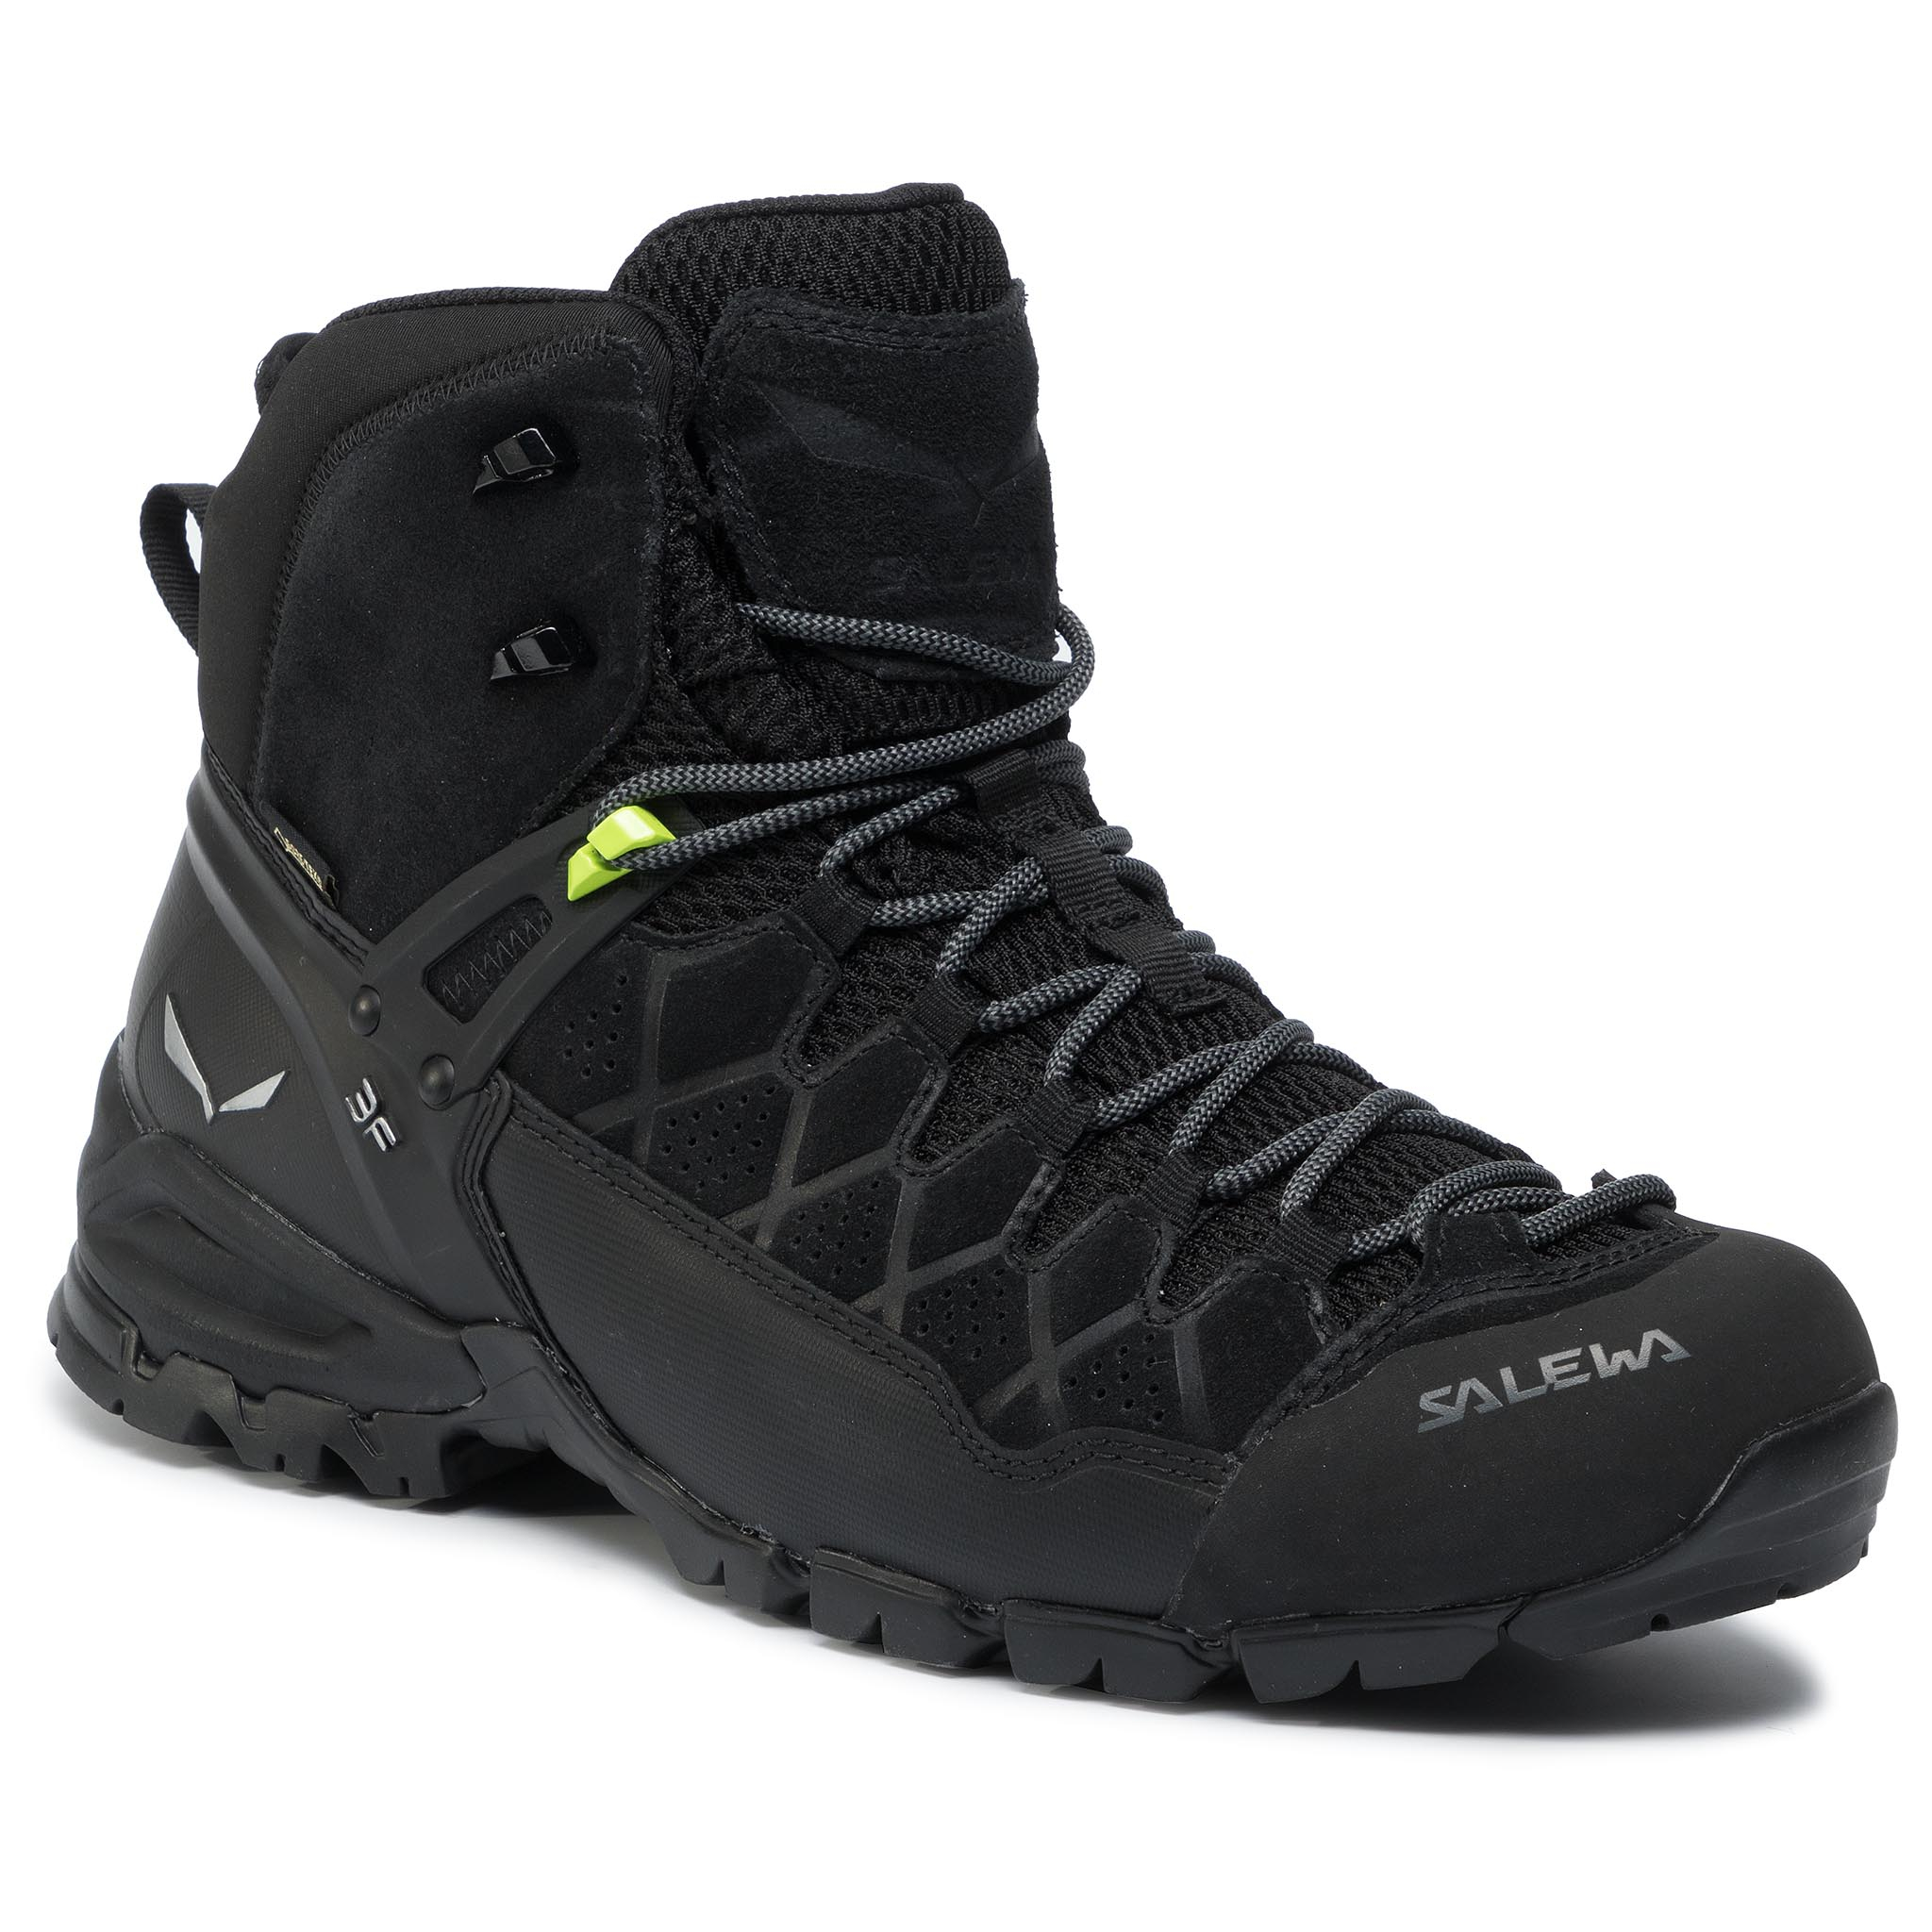 Trekkings SALEWA - Ms Alp Trainer Mid Gtx GORE-TEX 63432-0971 Black/Black